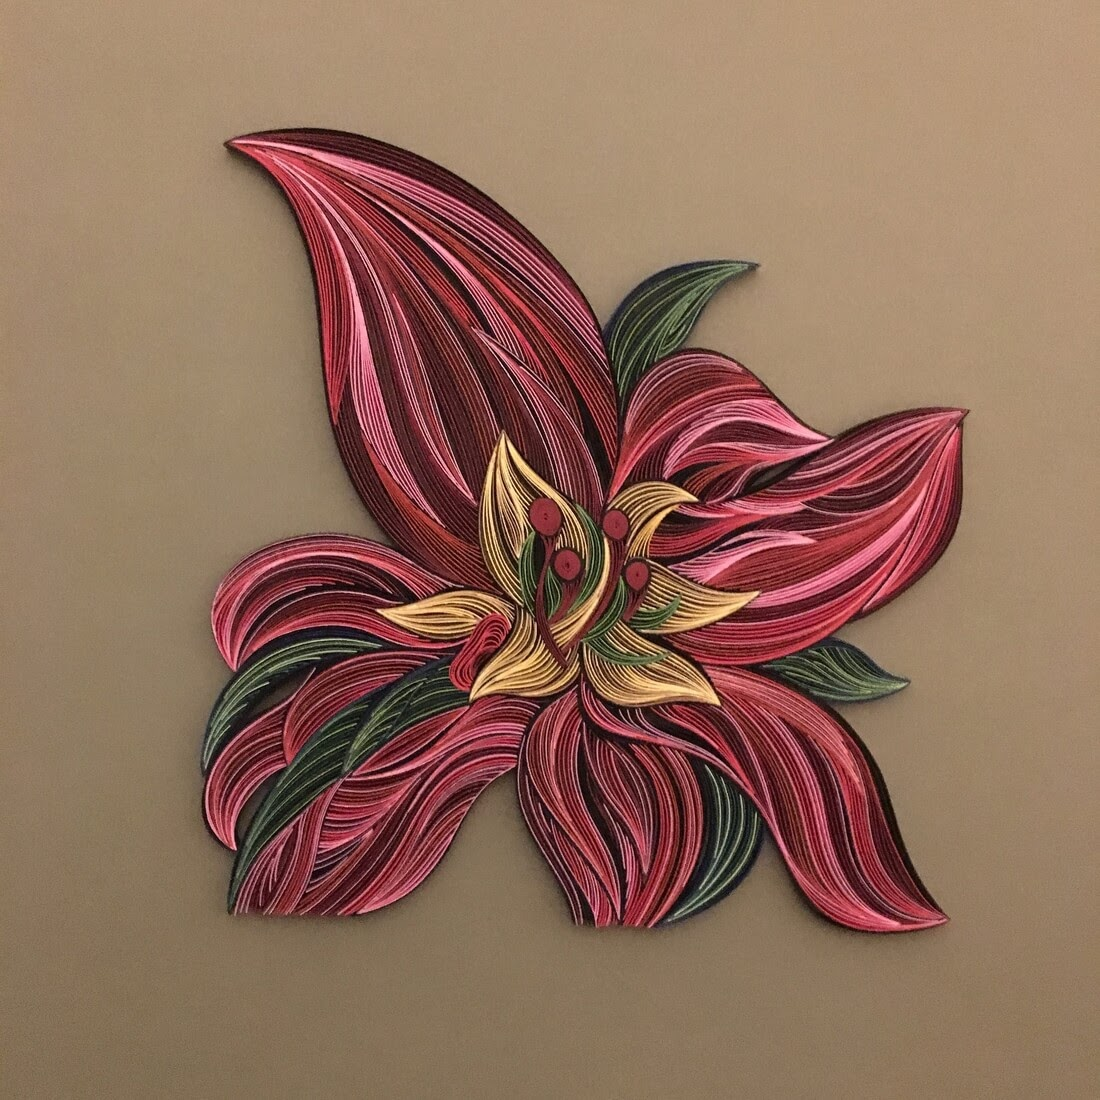 13-Flower-Tatiana-People-and-Animal-Portraits-plus-Flower-Quilling-www-designstack-co